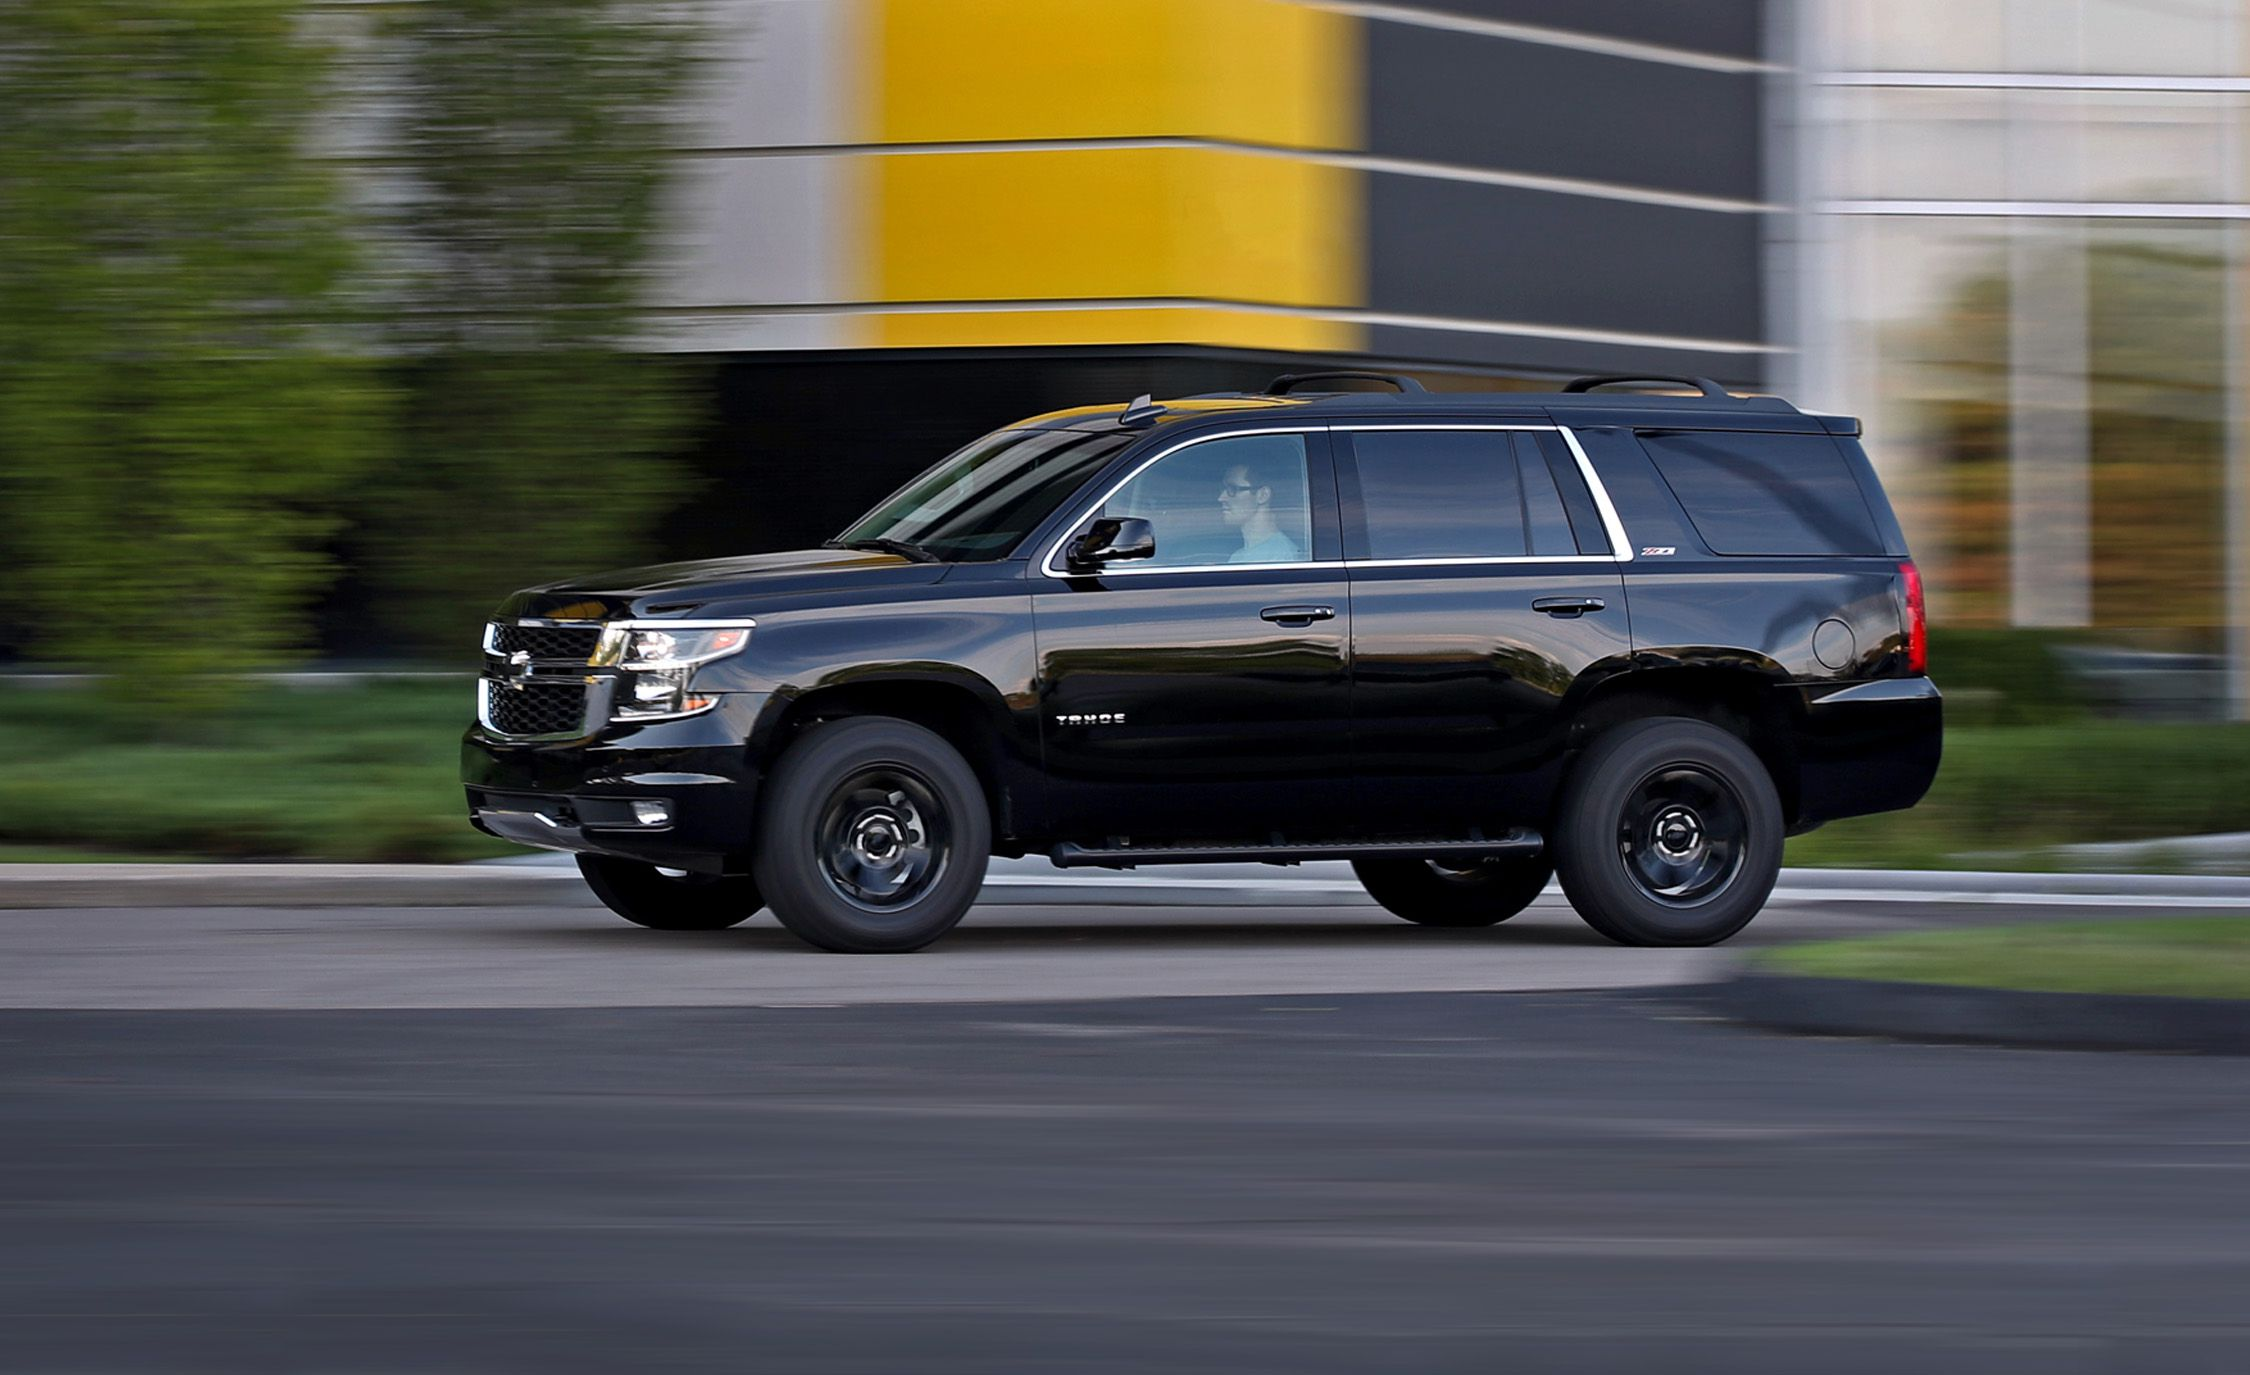 37 New 2020 Chevy Tahoe Z71 Ss Interior